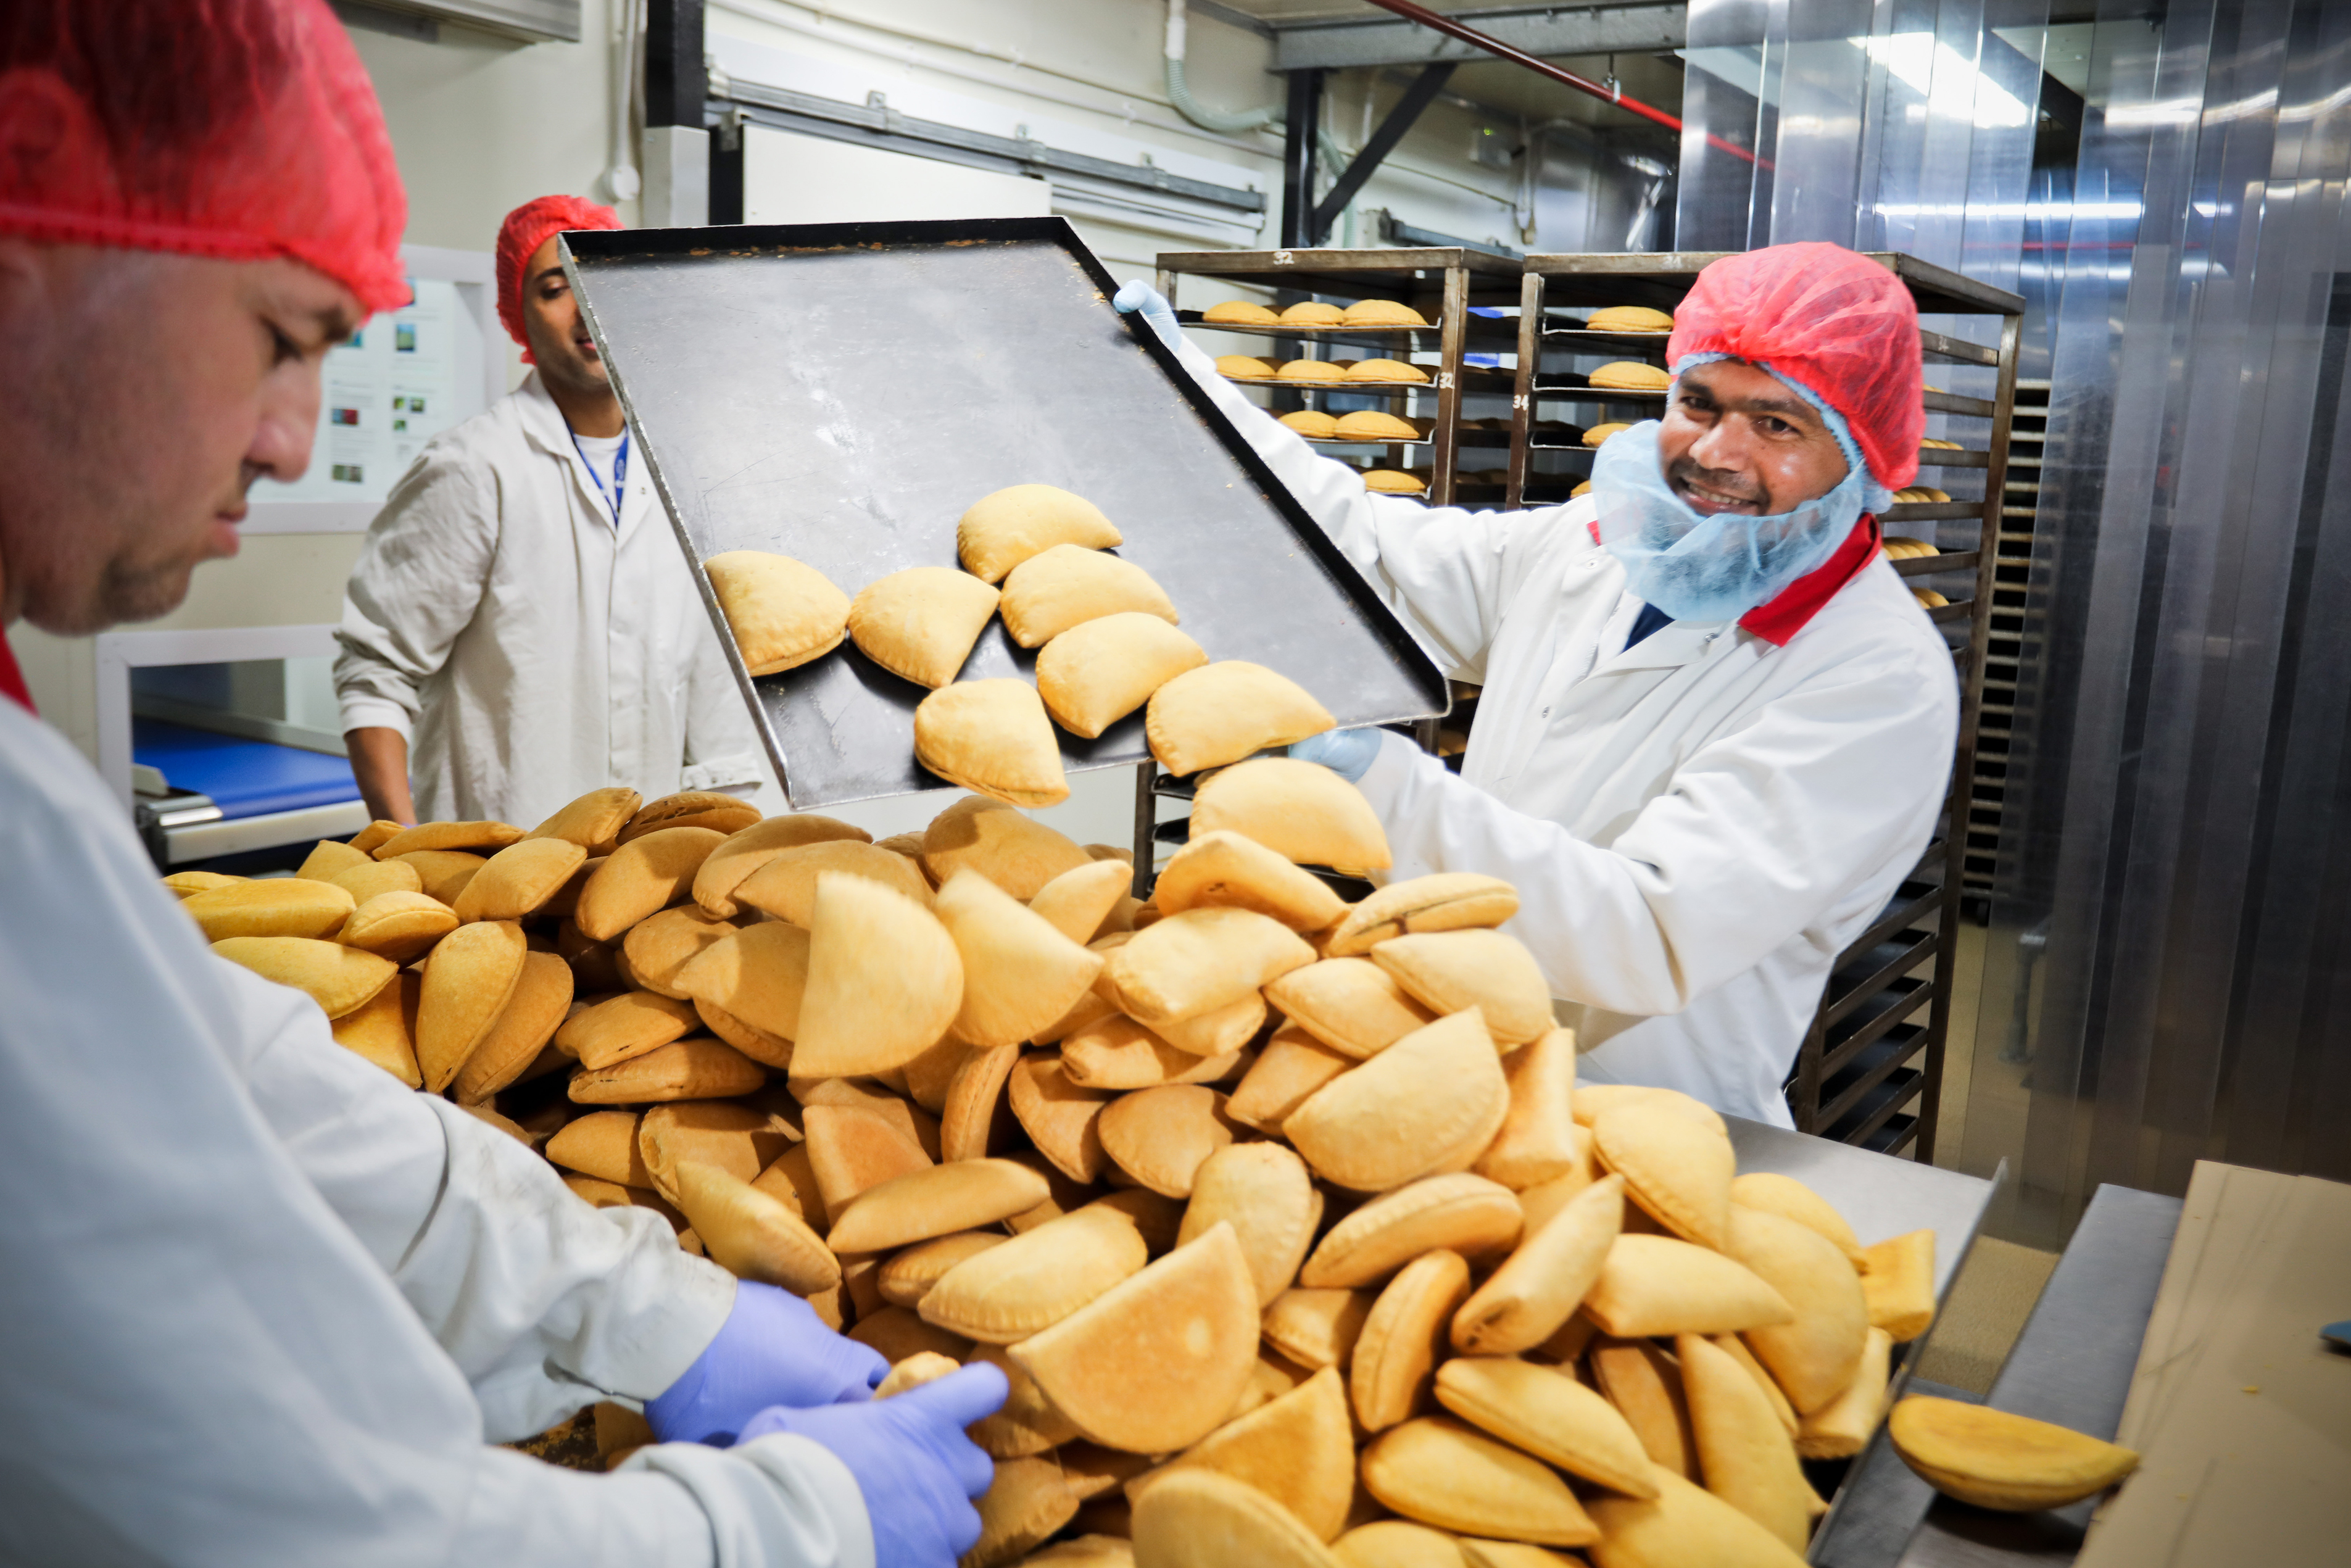 Jamaican patties remain a firm favourite, thanks to Burkert's 10-year-lasting valves